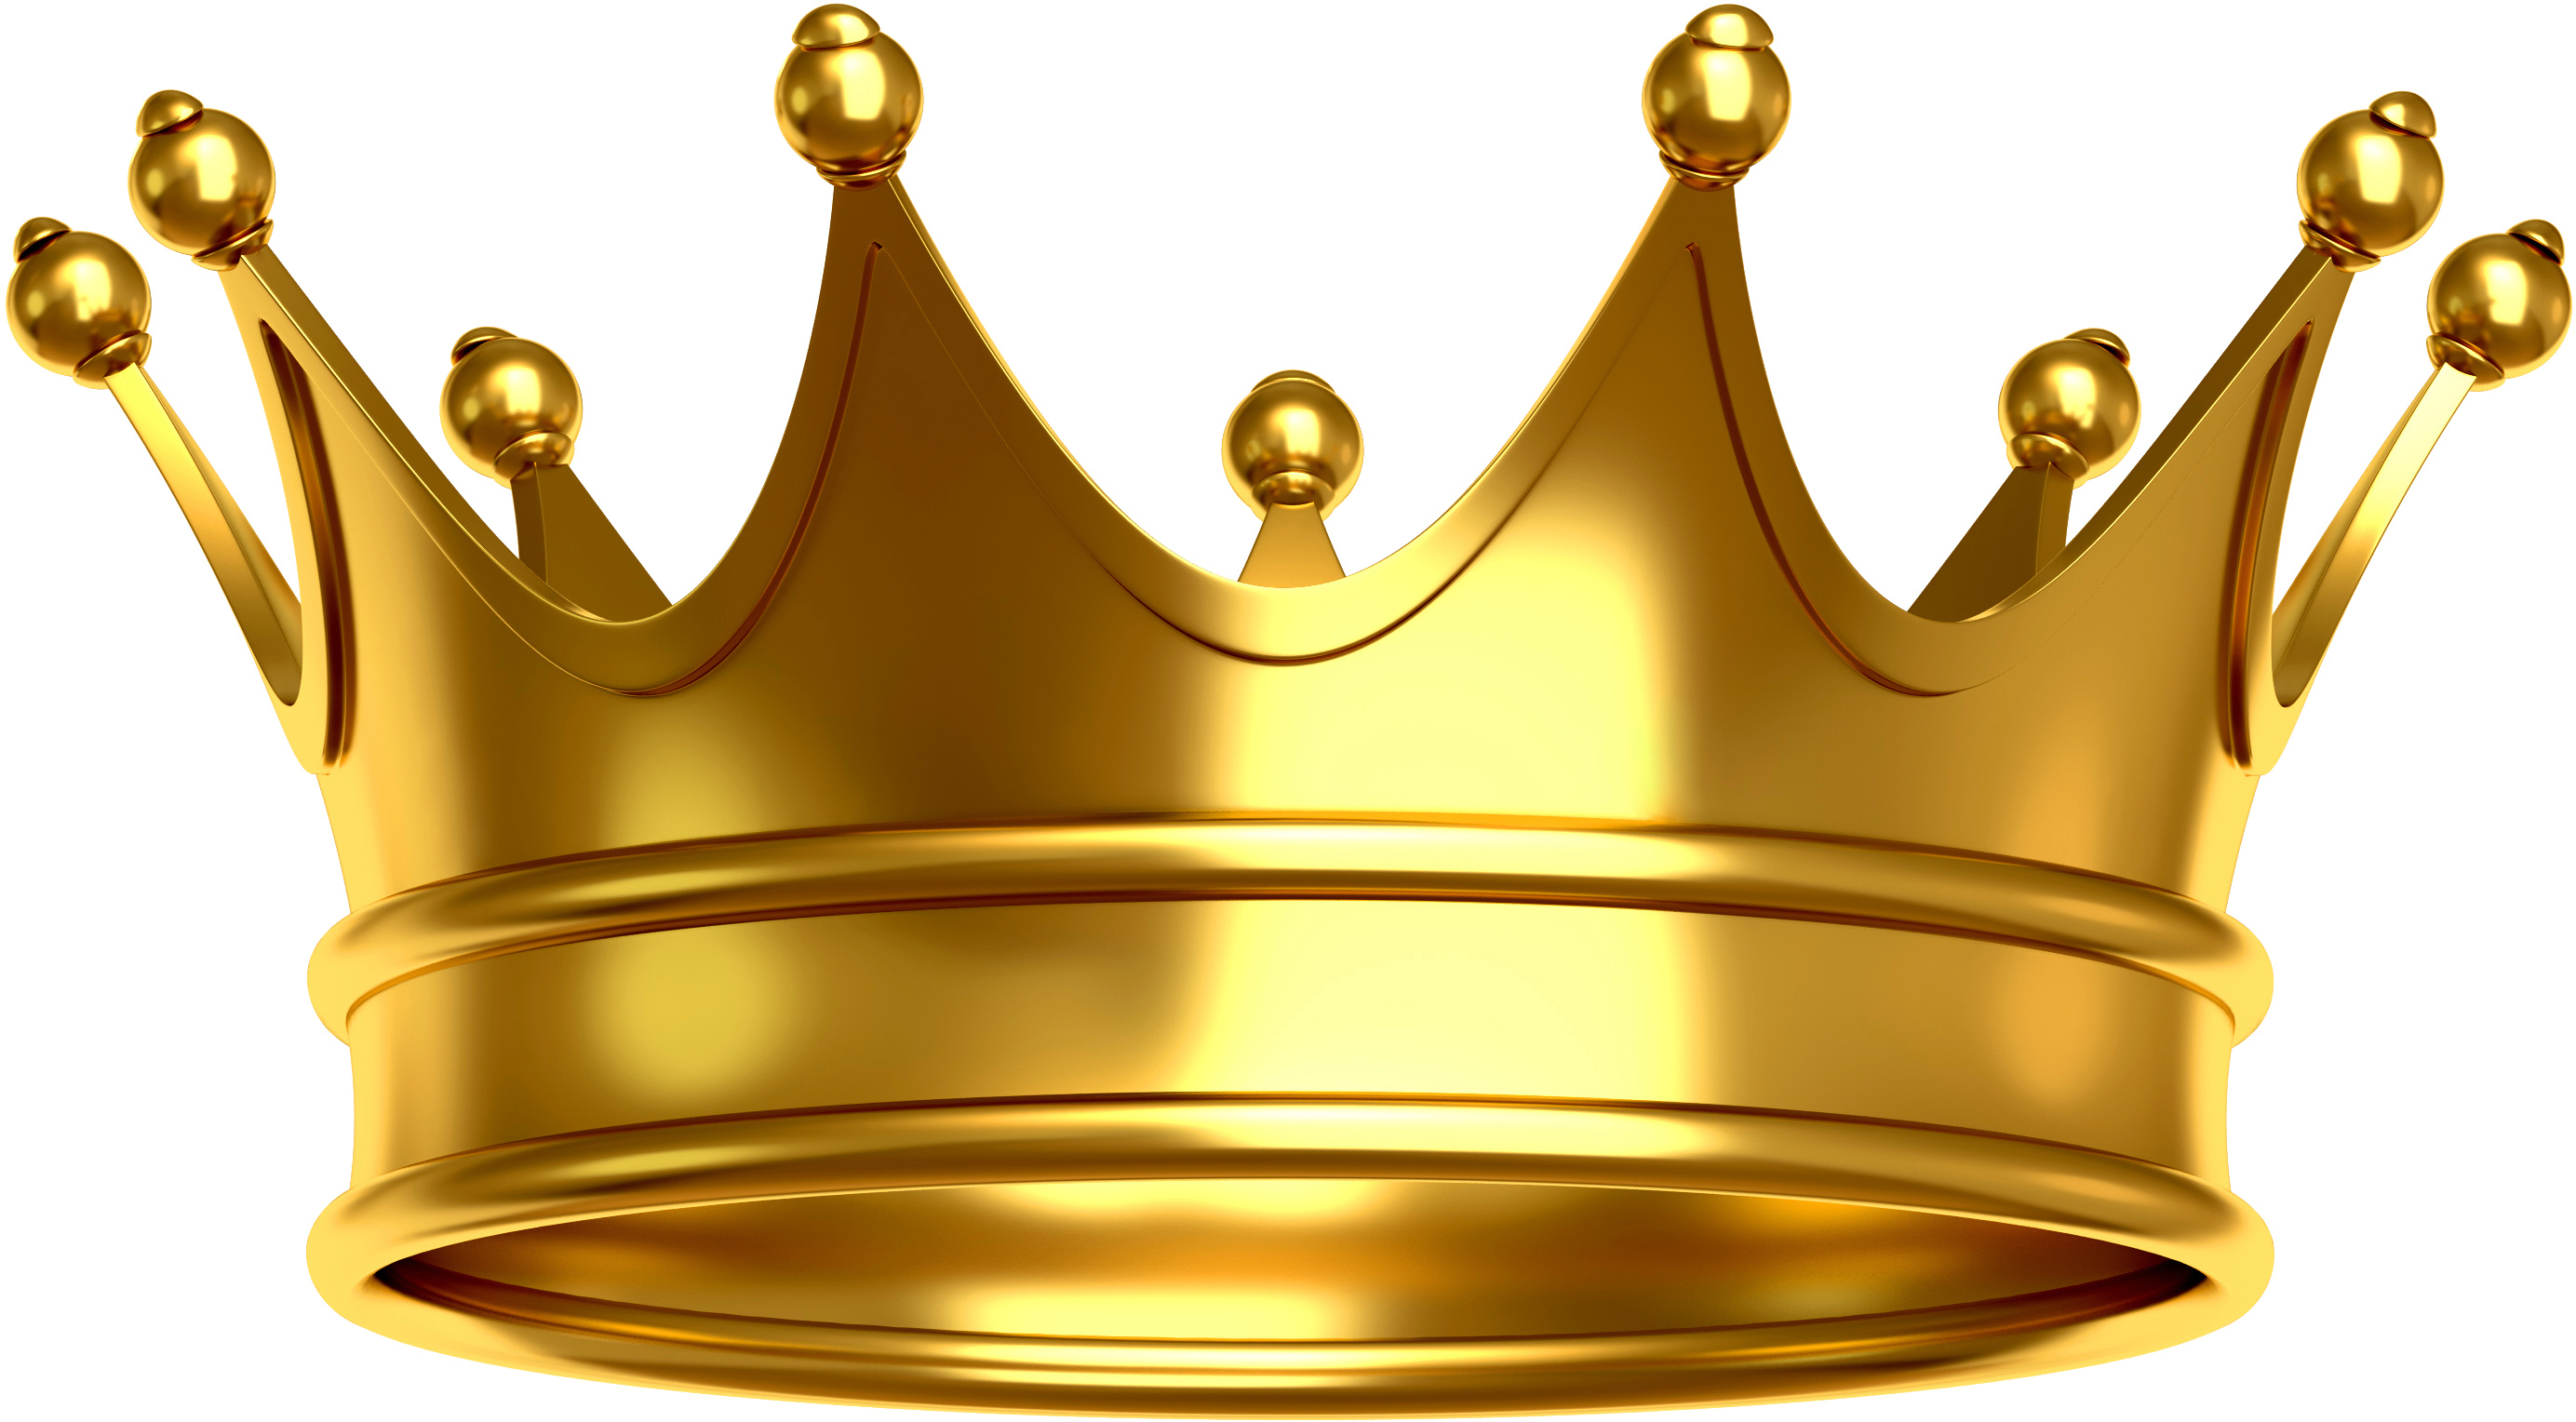 Crown Free Images At Clker Com Vector Cl-Crown Free Images At Clker Com Vector Clip Art Online Royalty-2